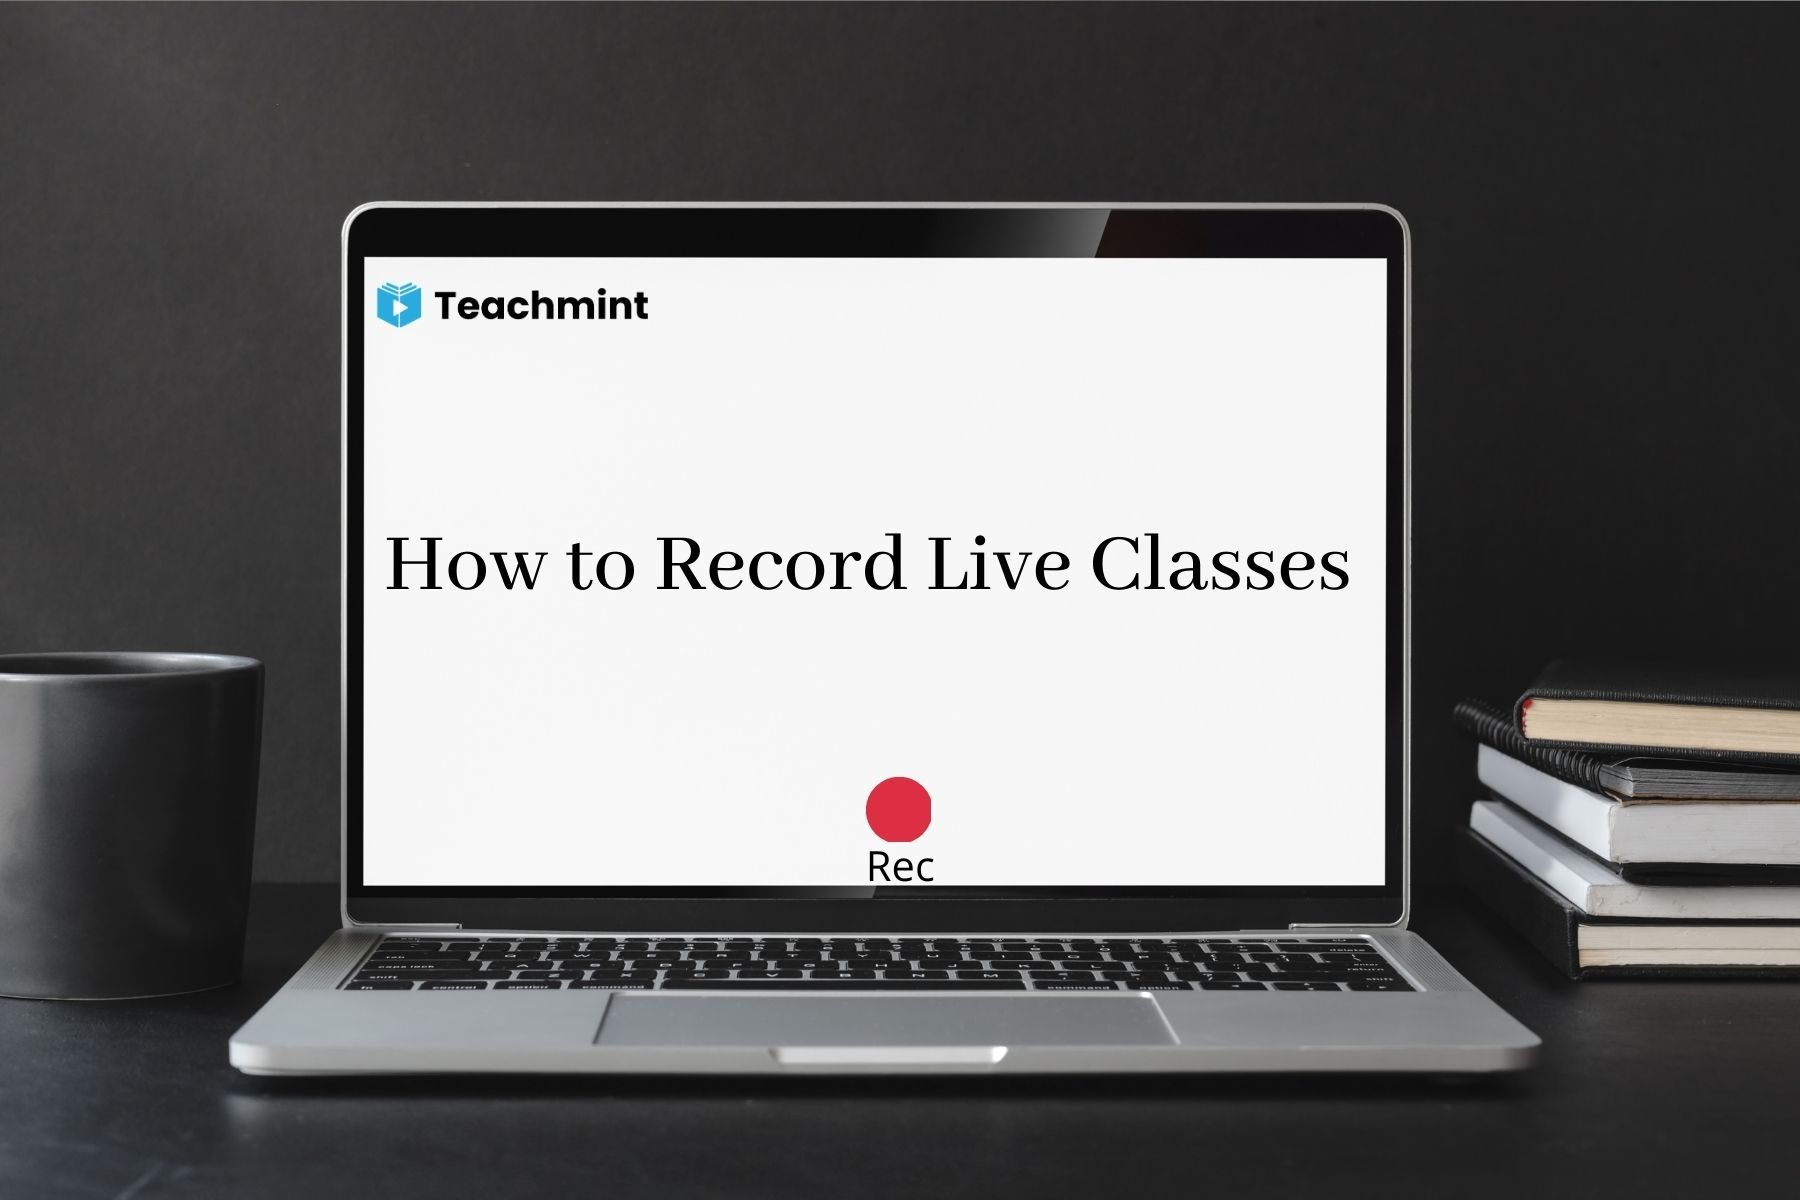 How to Record Live Classes